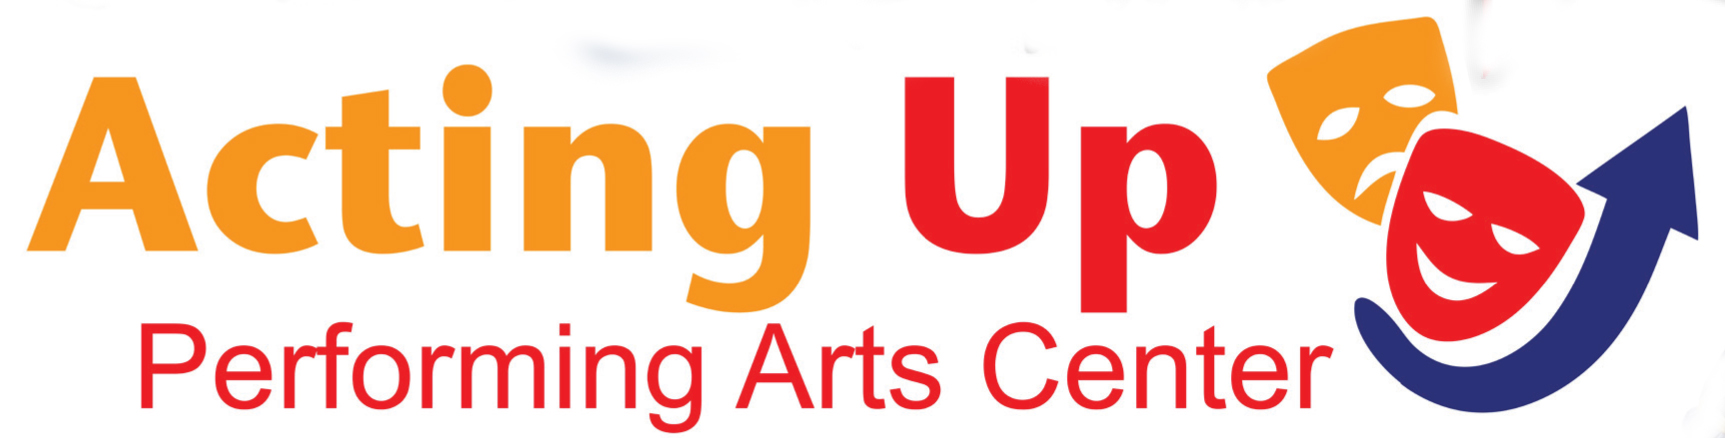 Acting Up Performing Arts Center